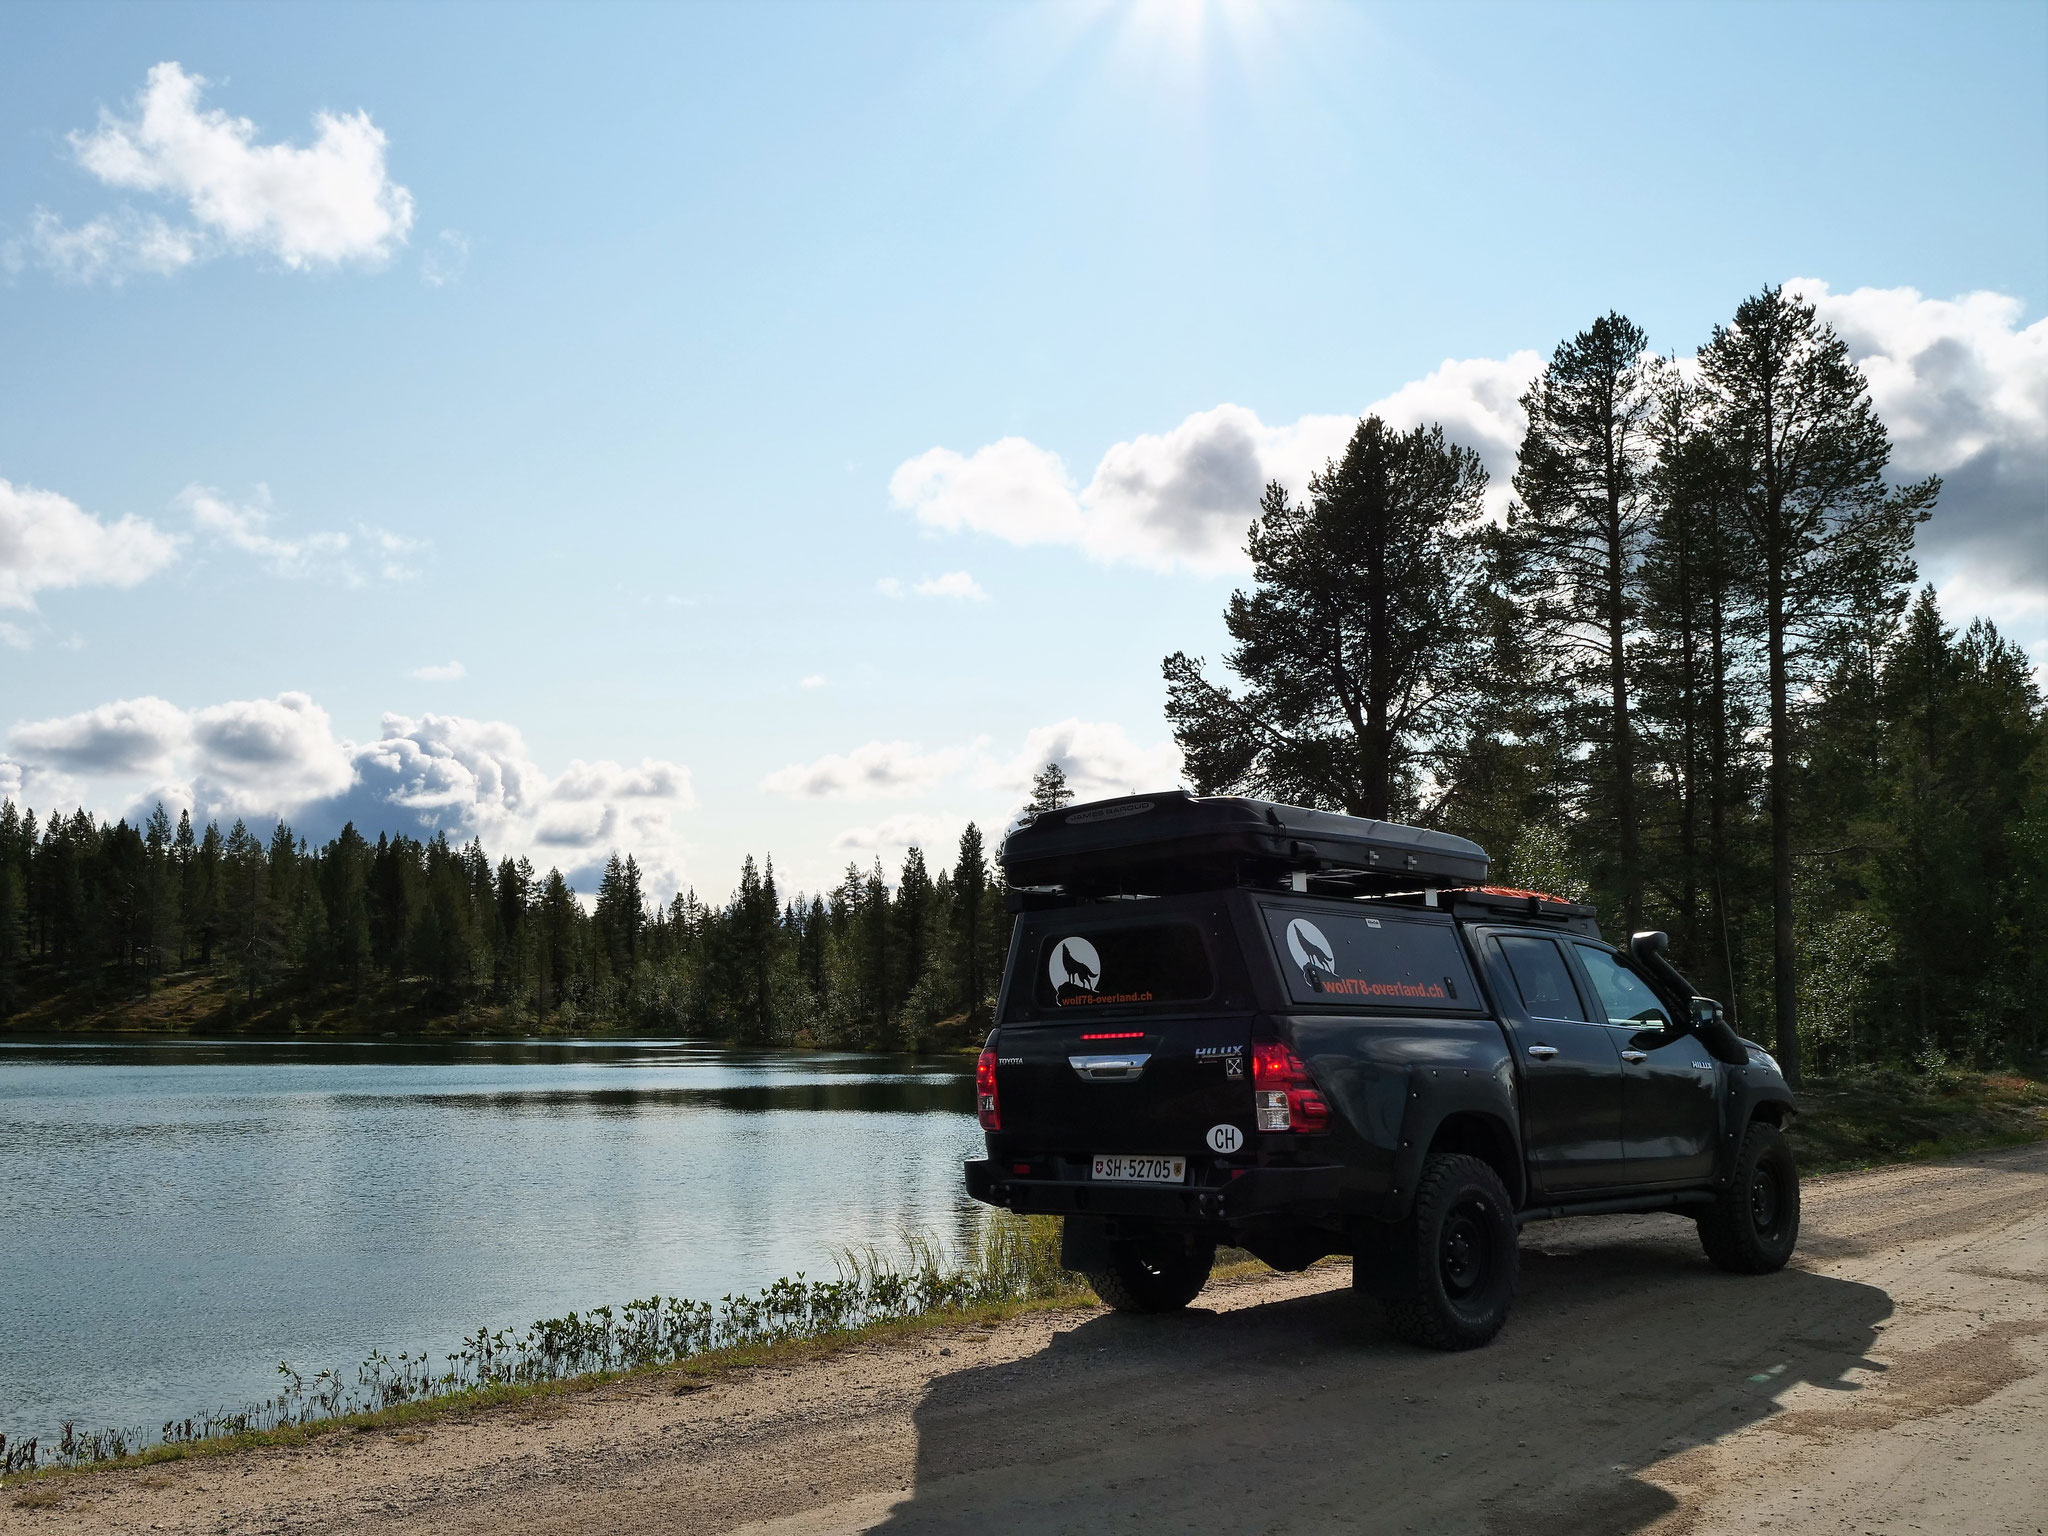 Toyota Hilux Revo 2017 2.4 #ProjektBlackwolf Alu-cab offroad overland expedition 4x4 T-Max Hil-ift ARB Frontrunner Rocksliders Roofrack James Baroud Discovery Awining Markisewolf78-overland.ch